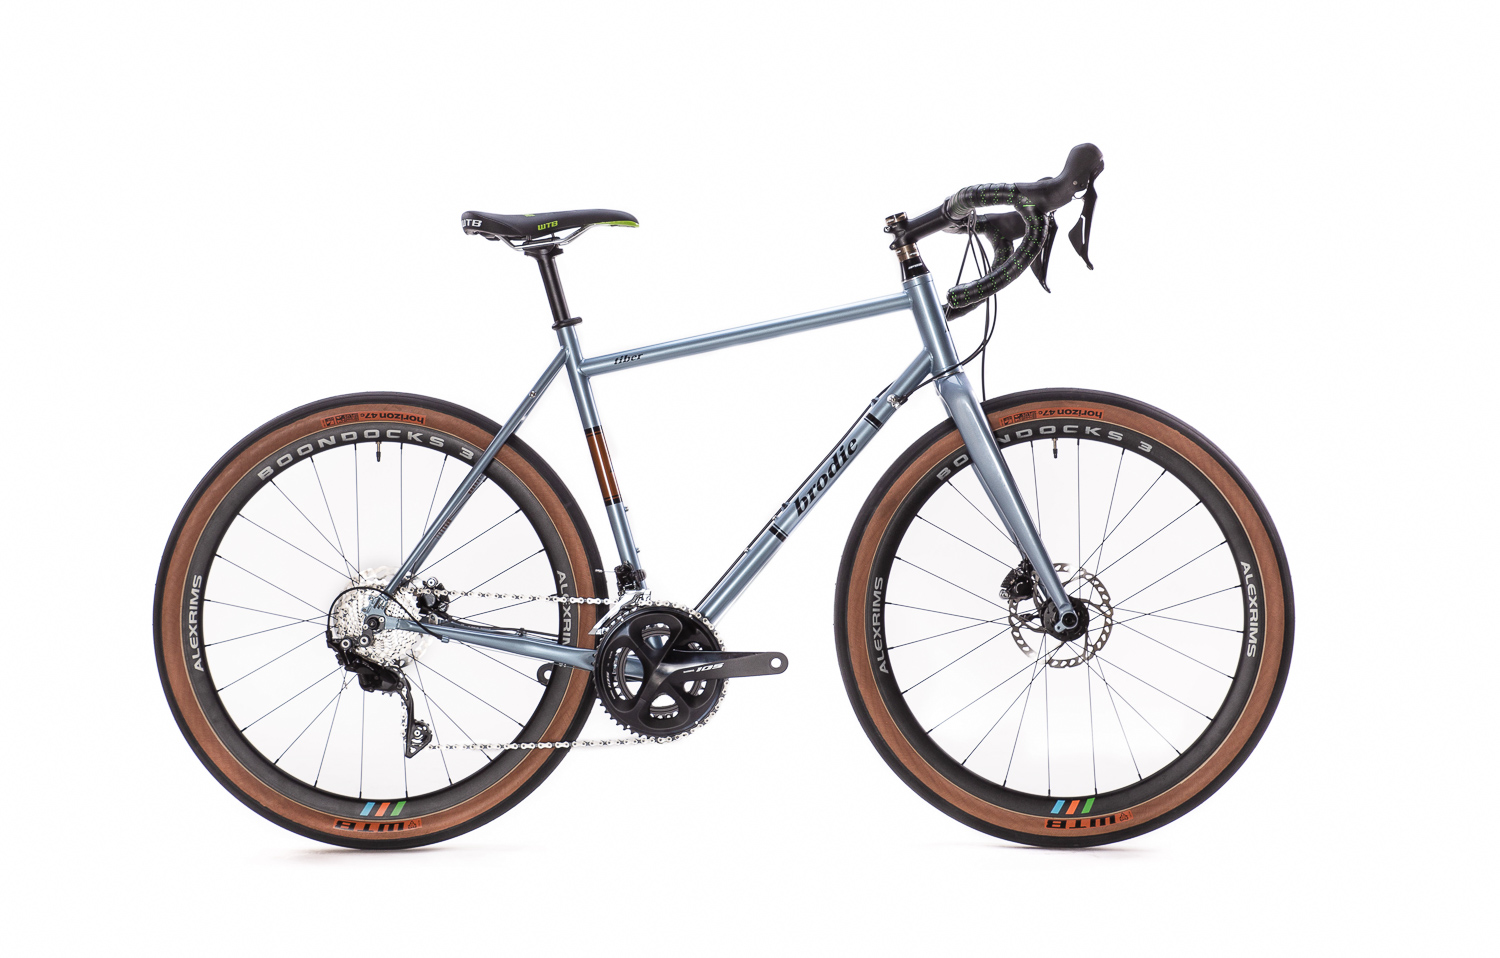 Have a look at the Tiber in the Road Plus Gravel Series - $2899